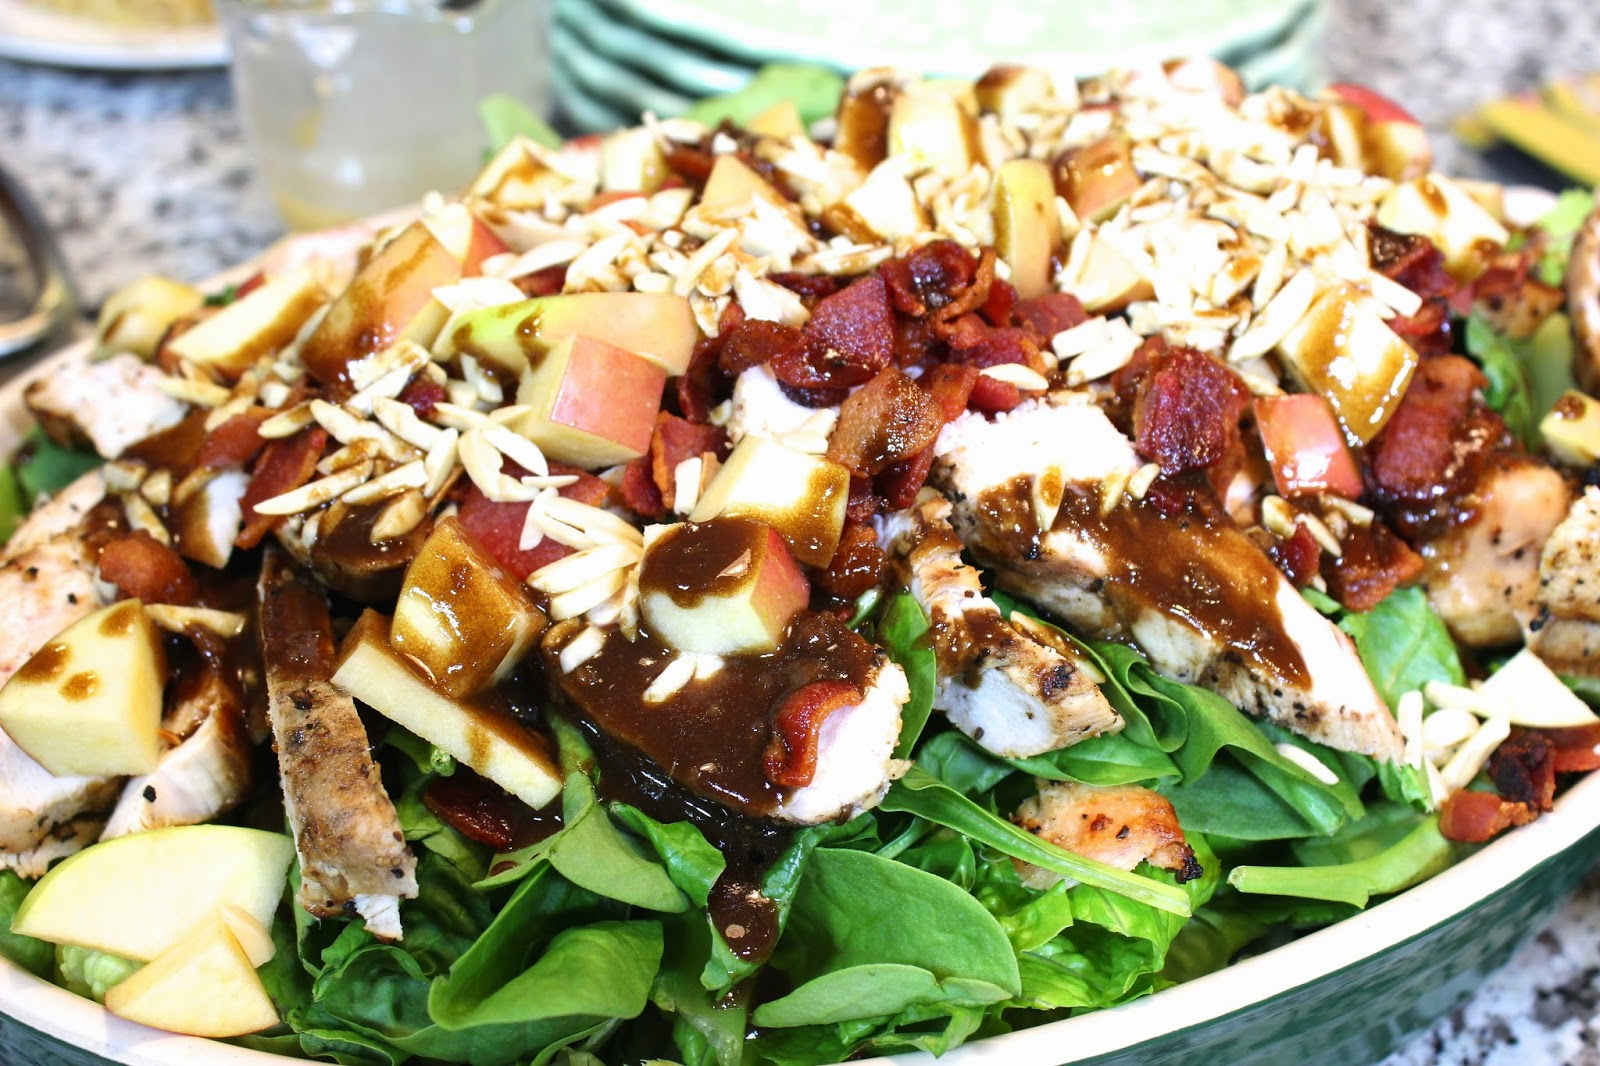 Apple, Bacon & Grilled Chicken Salad with Balsamic Vinaigrette